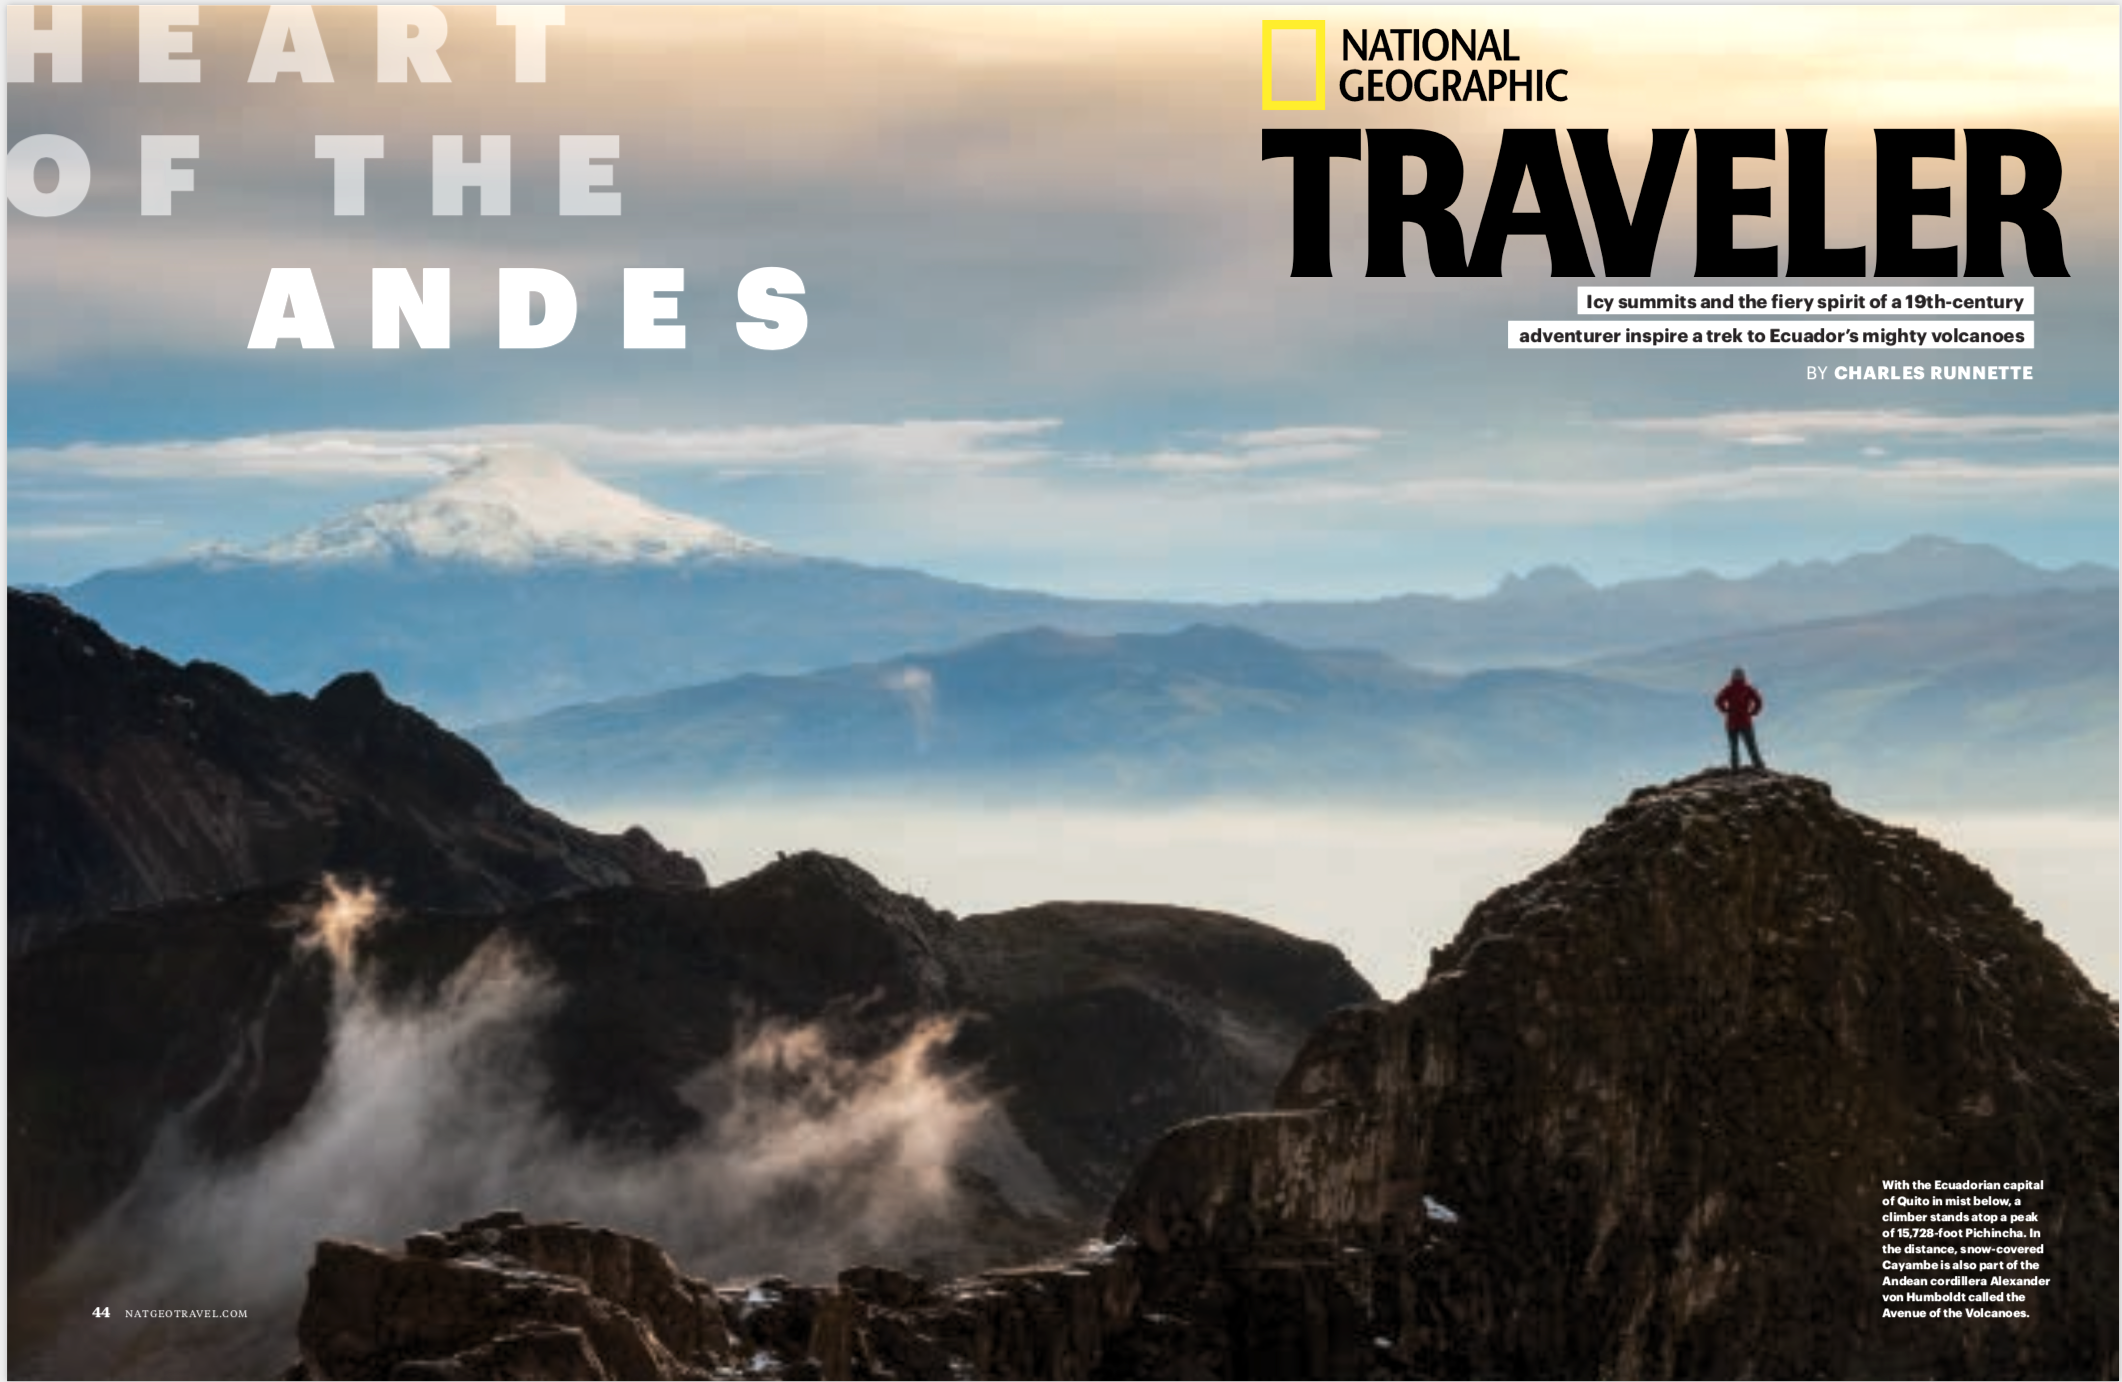 Heart of the Andes - I wrote a feature about mountain climbing in the footsteps of Alexander Von Humboldt through the Ecuadorian Andes for National Geographic Traveler.(NGT — August/September 2018)